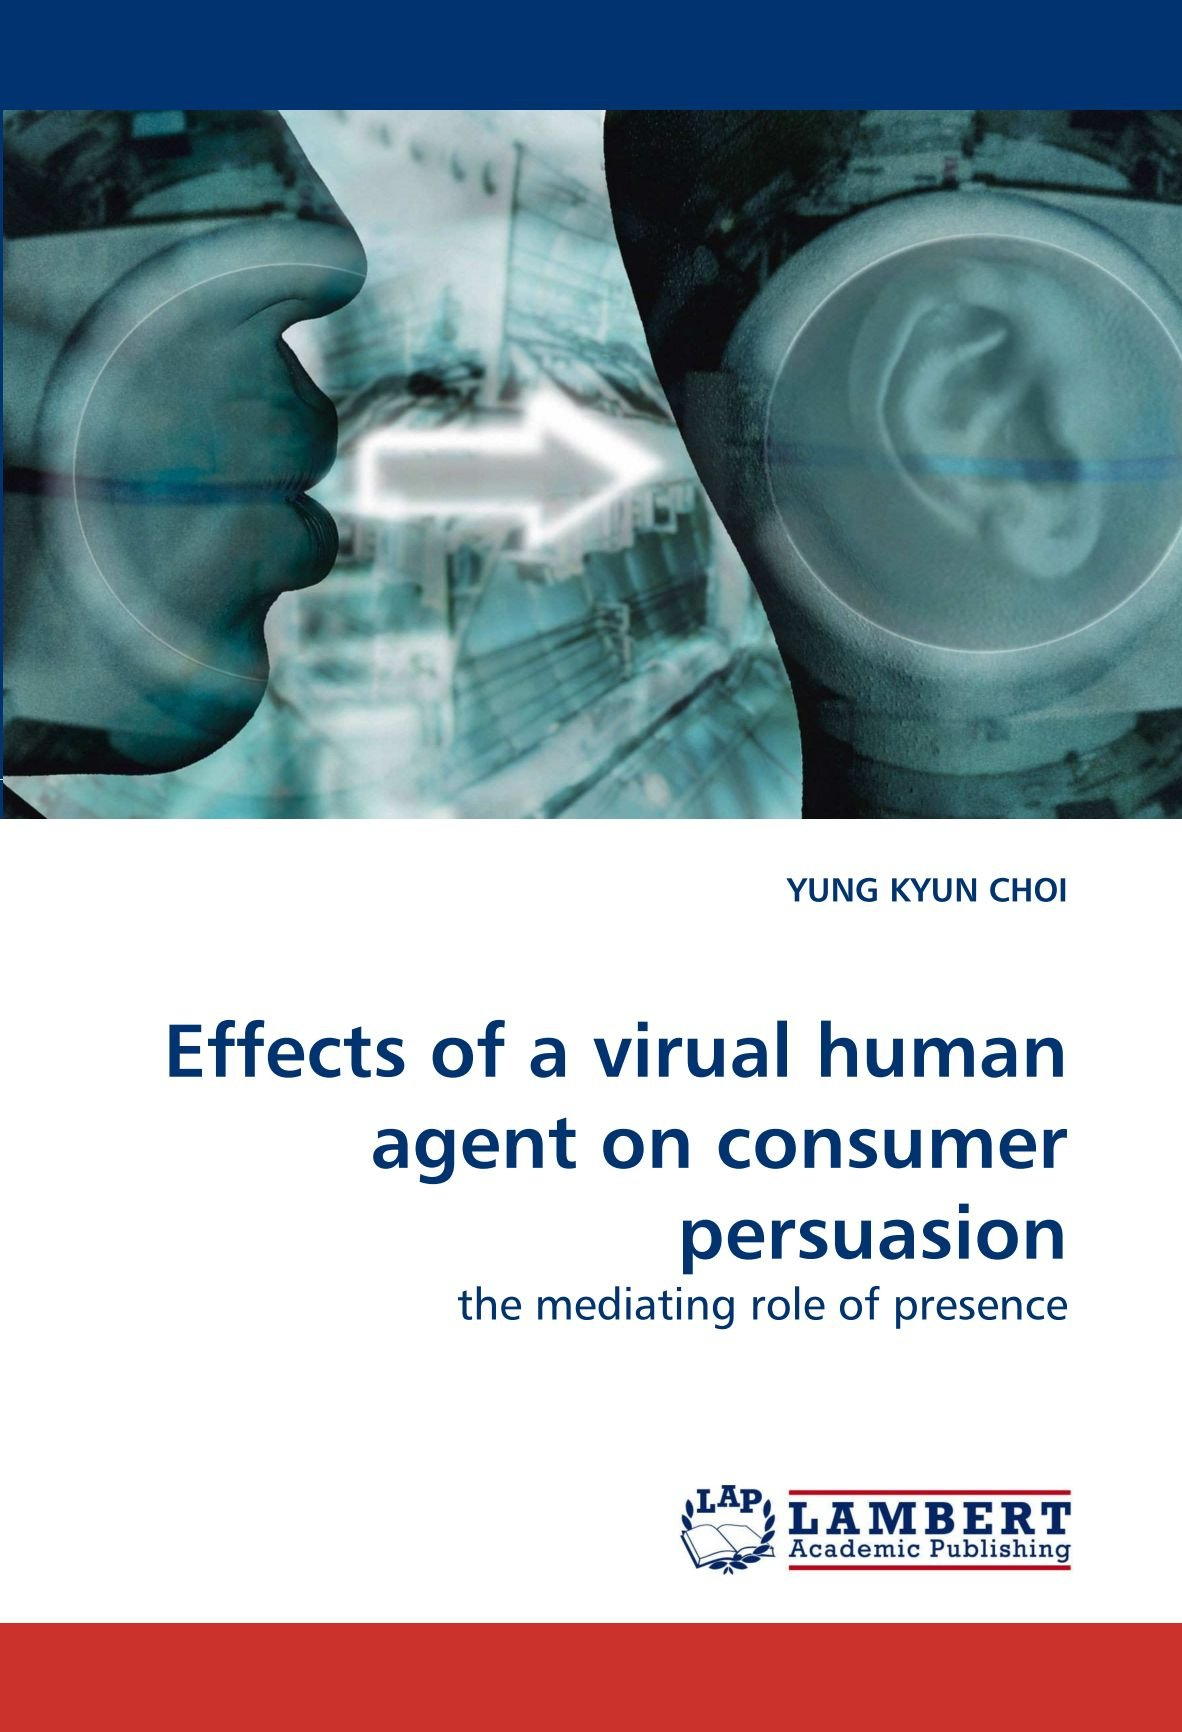 Effects of a virual human agent on consumer persuasion: the mediating role of presence pdf epub